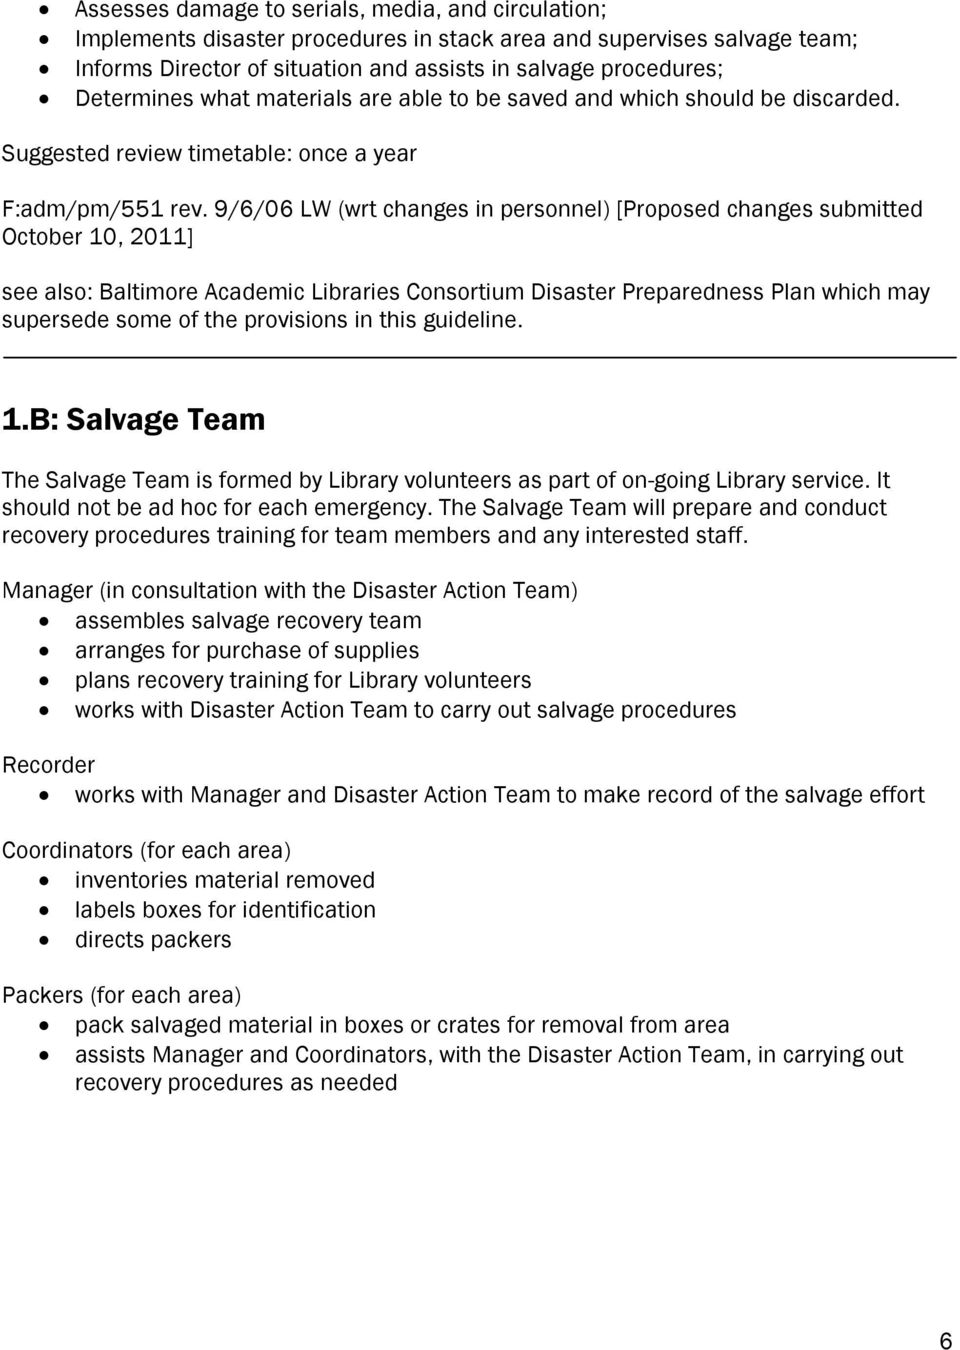 9/6/06 LW (wrt changes in personnel) [Proposed changes submitted October 10, 2011] see also: Baltimore Academic Libraries Consortium Disaster Preparedness Plan which may supersede some of the